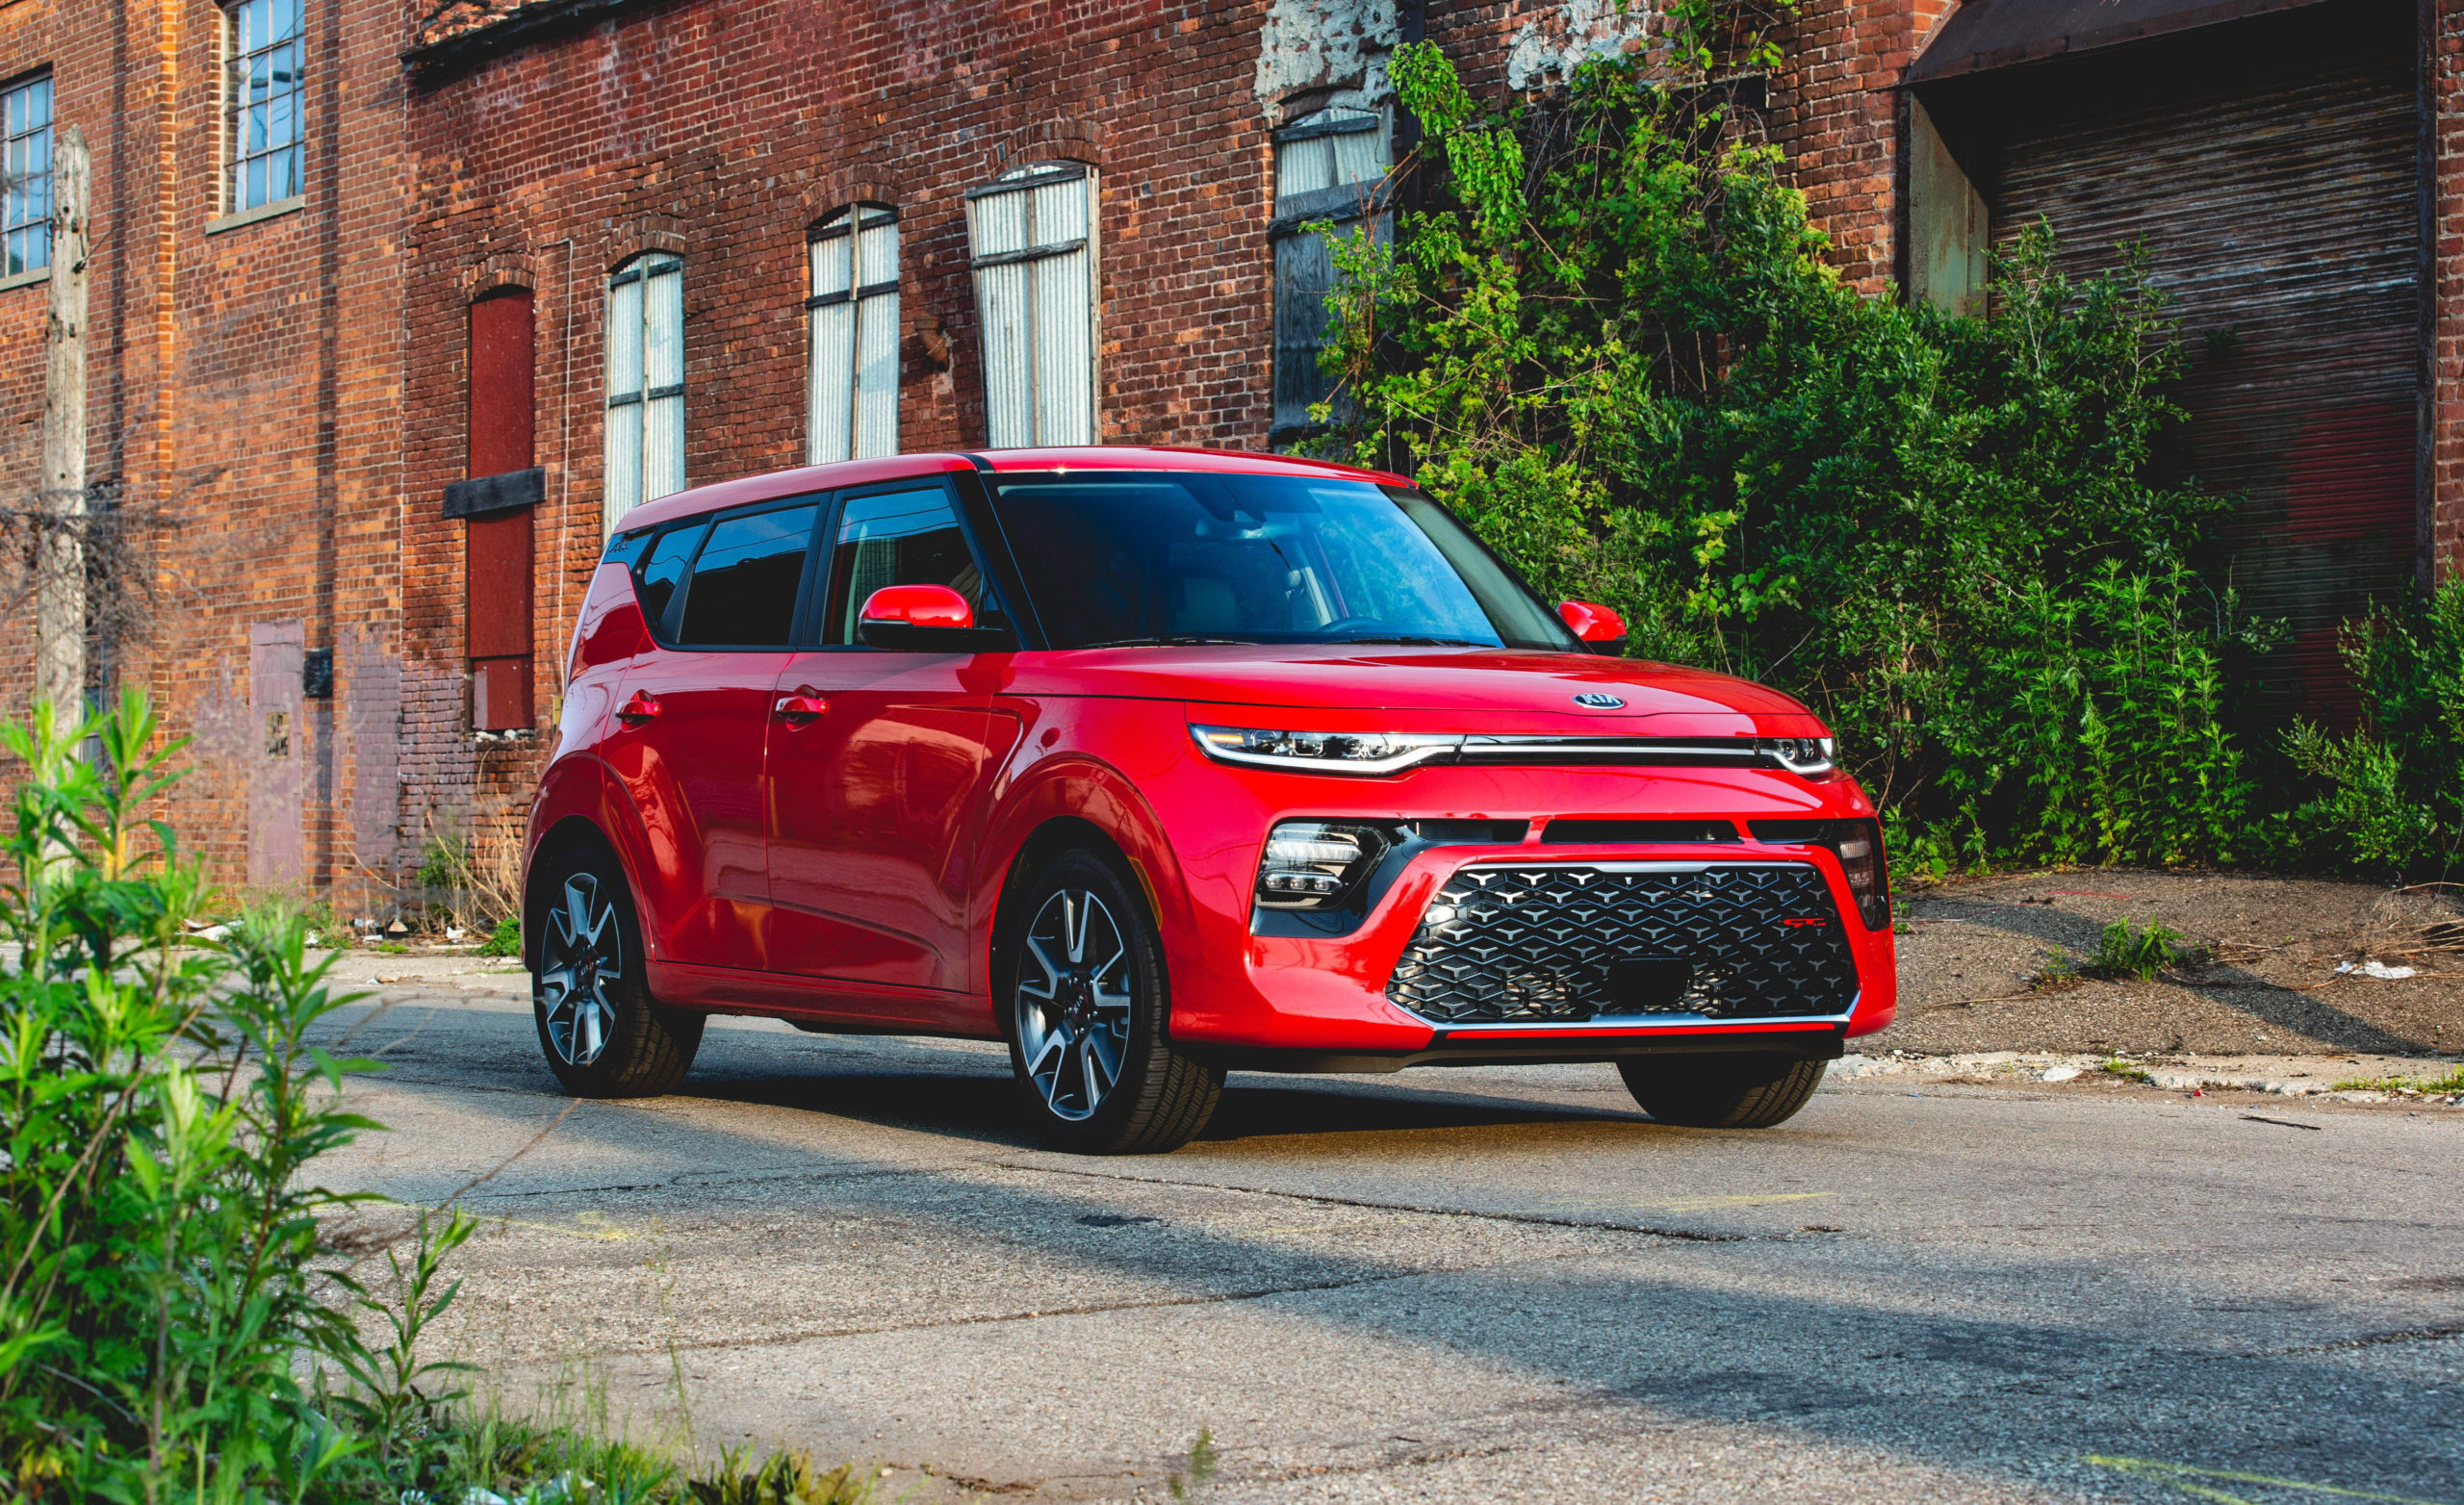 2020 Kia Soul Hits Its Marks As A Better Vehicle Overall - 2022 Kia Soul Turbo 0-60 Specification, Release Date